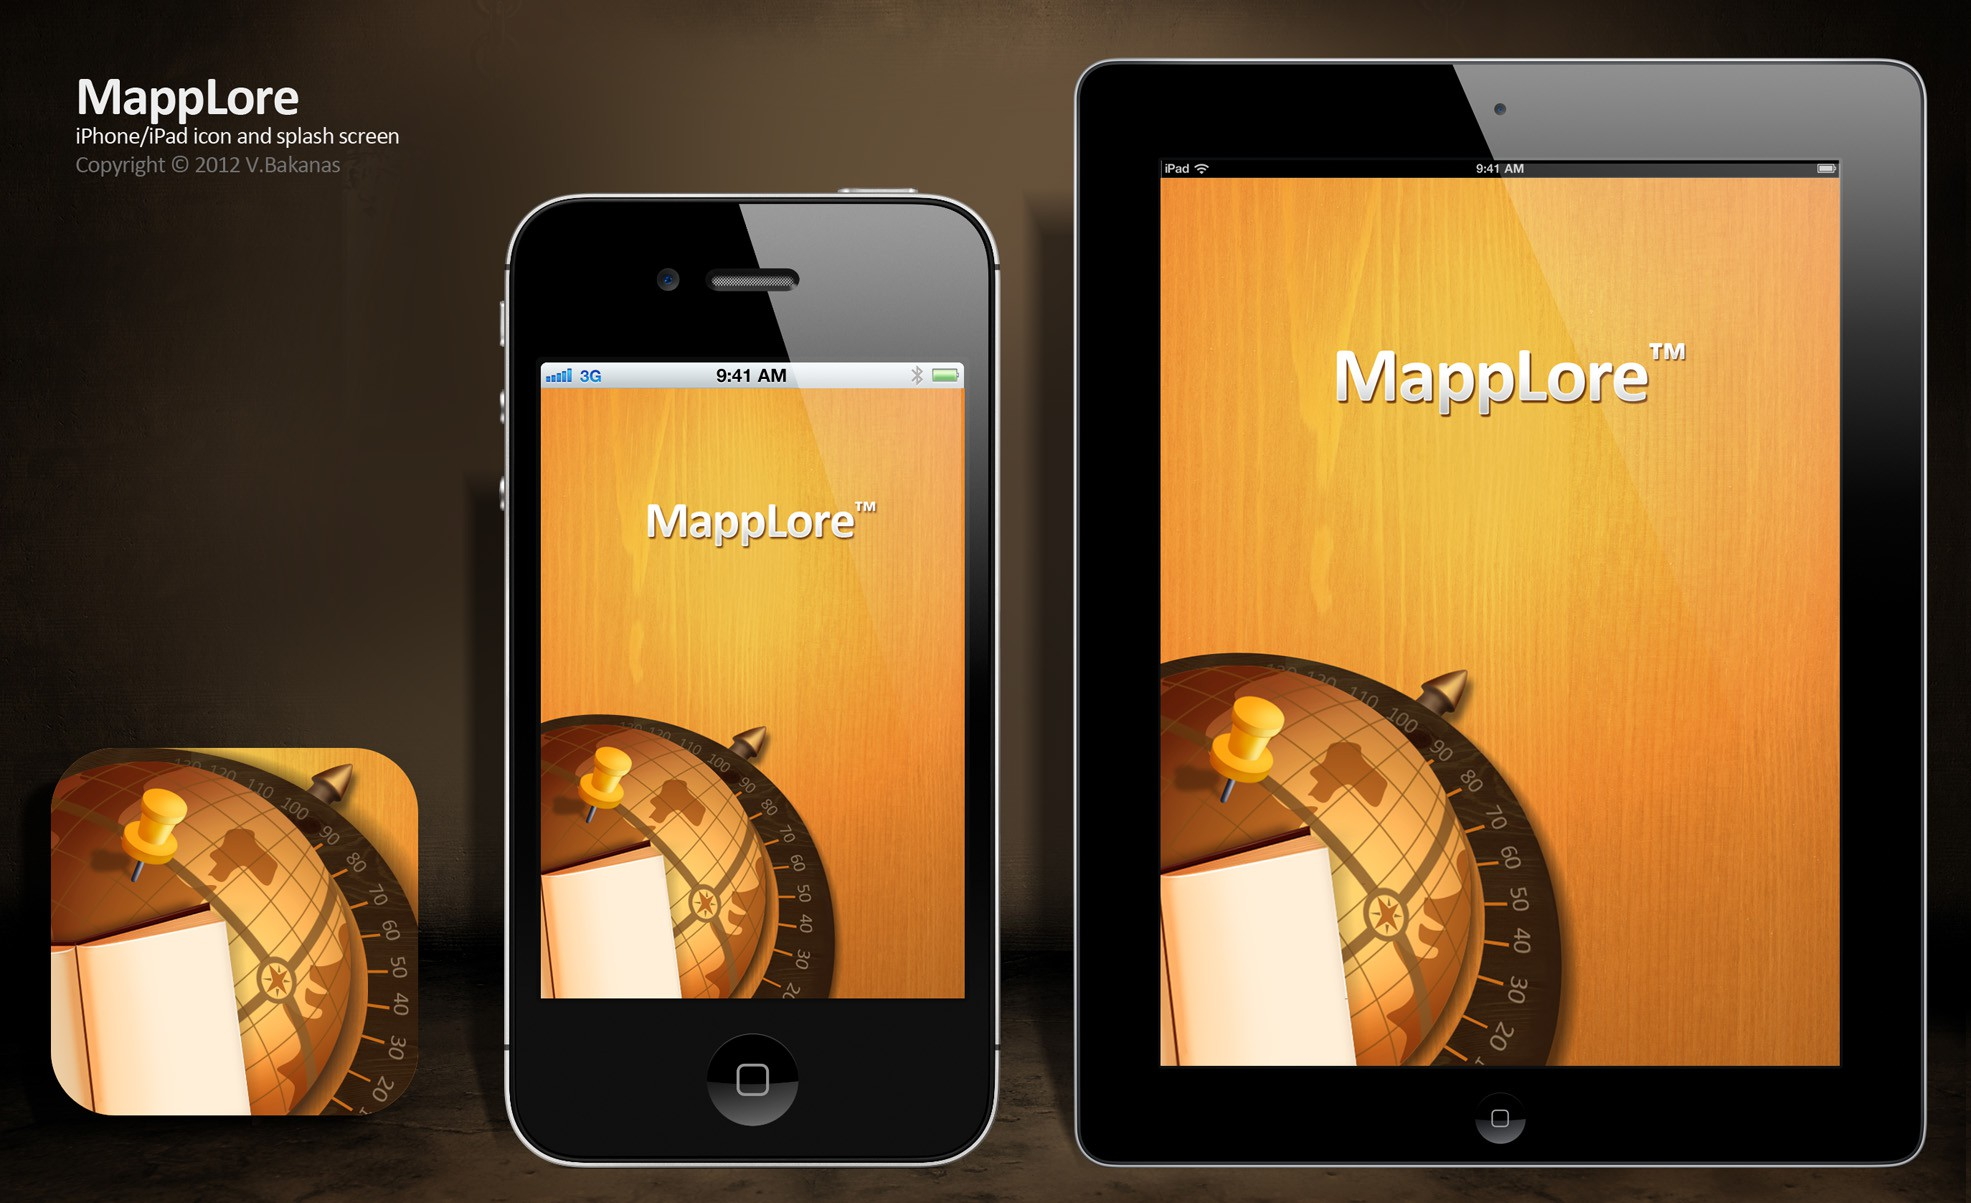 Help MappLore with a new icon or button design